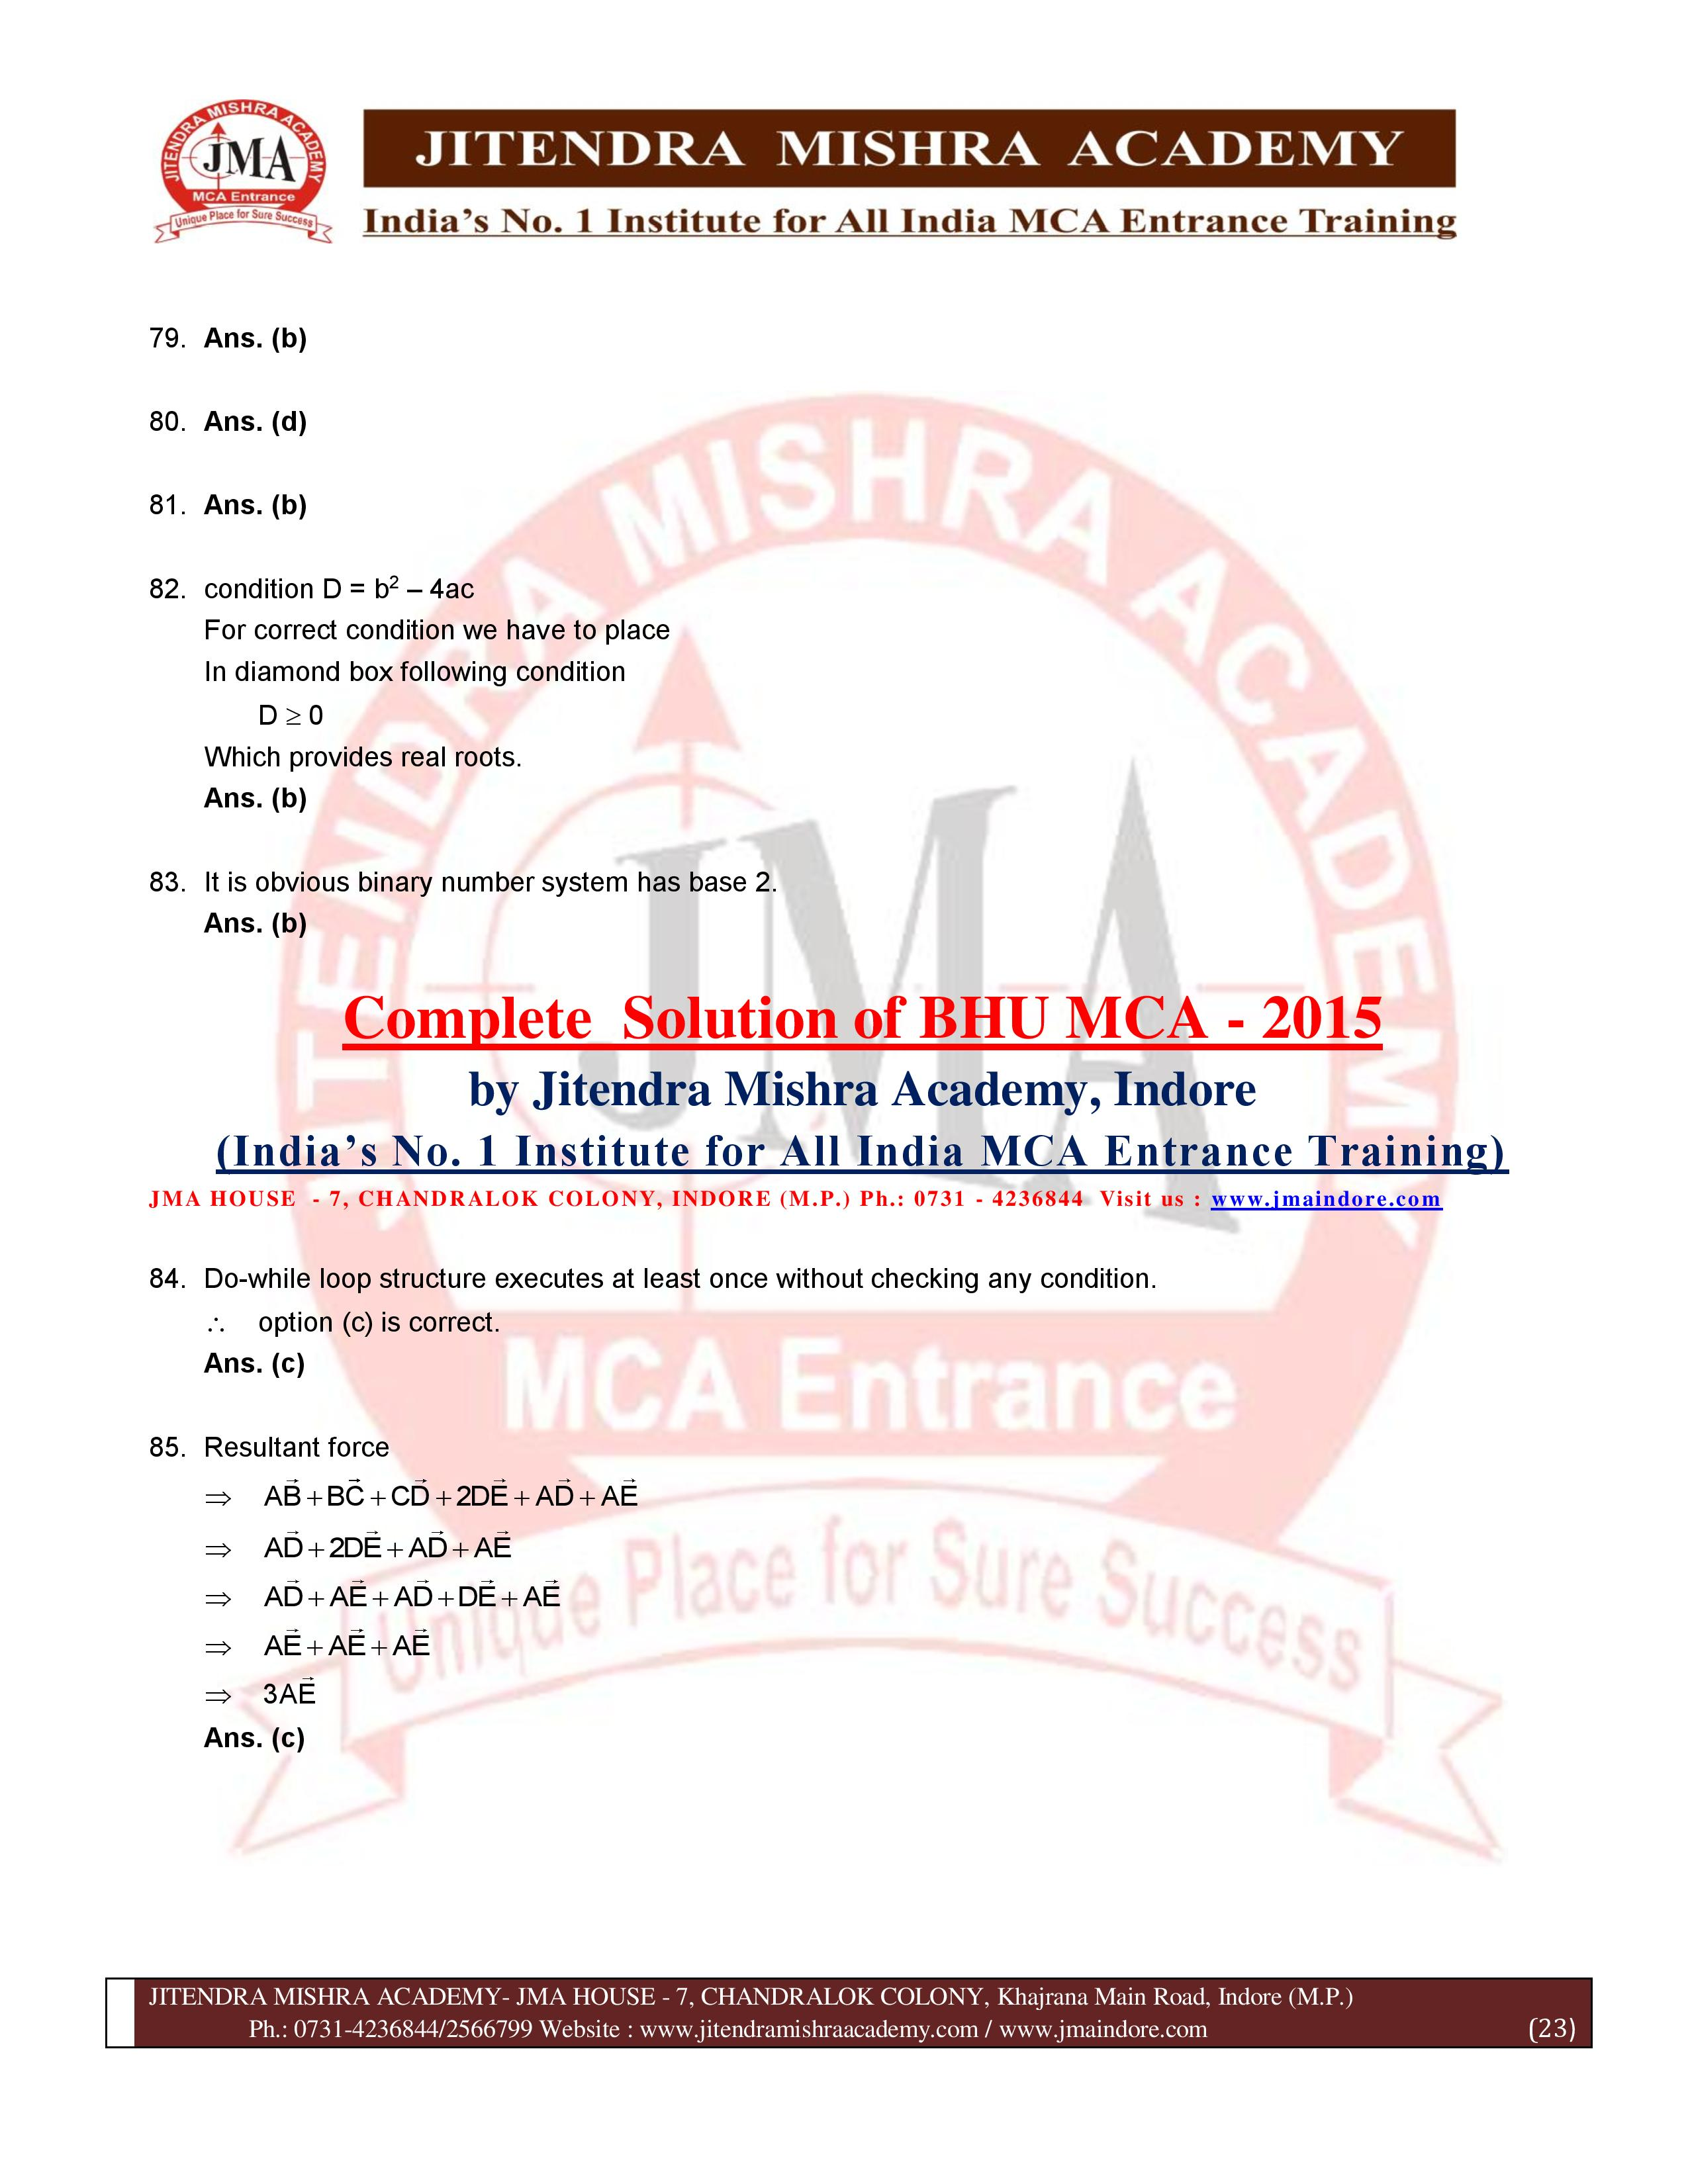 BHU 2015 SOLUTION (SET - 1) (29.06.16)-page-023